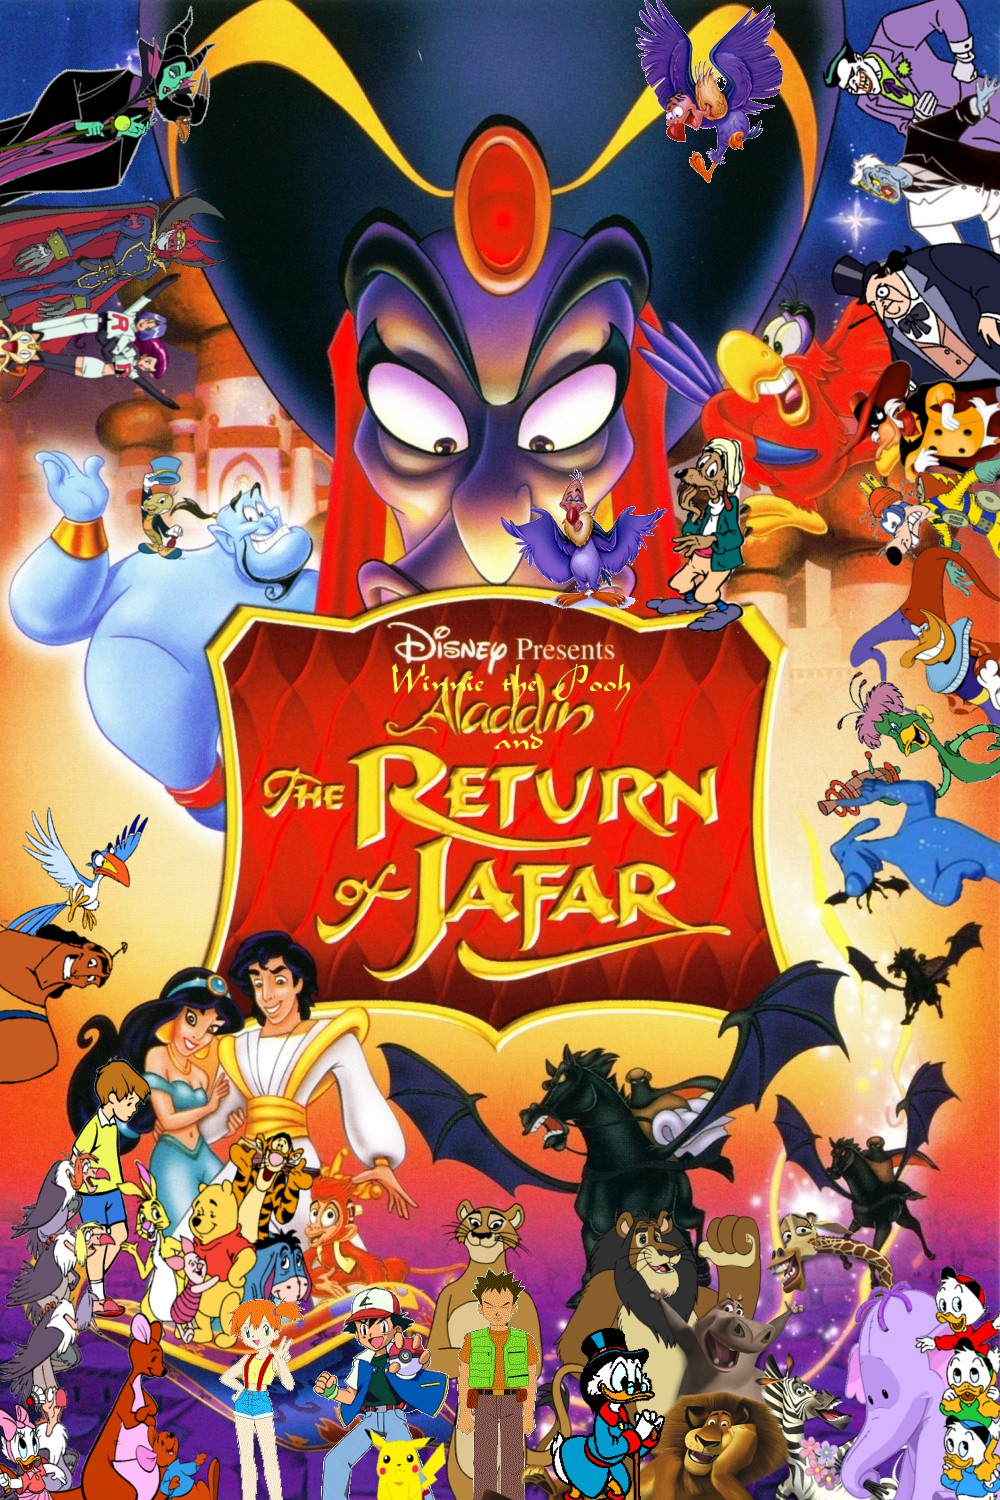 new version of the poster for Winnie the Pooh and The Return of Jafar ...